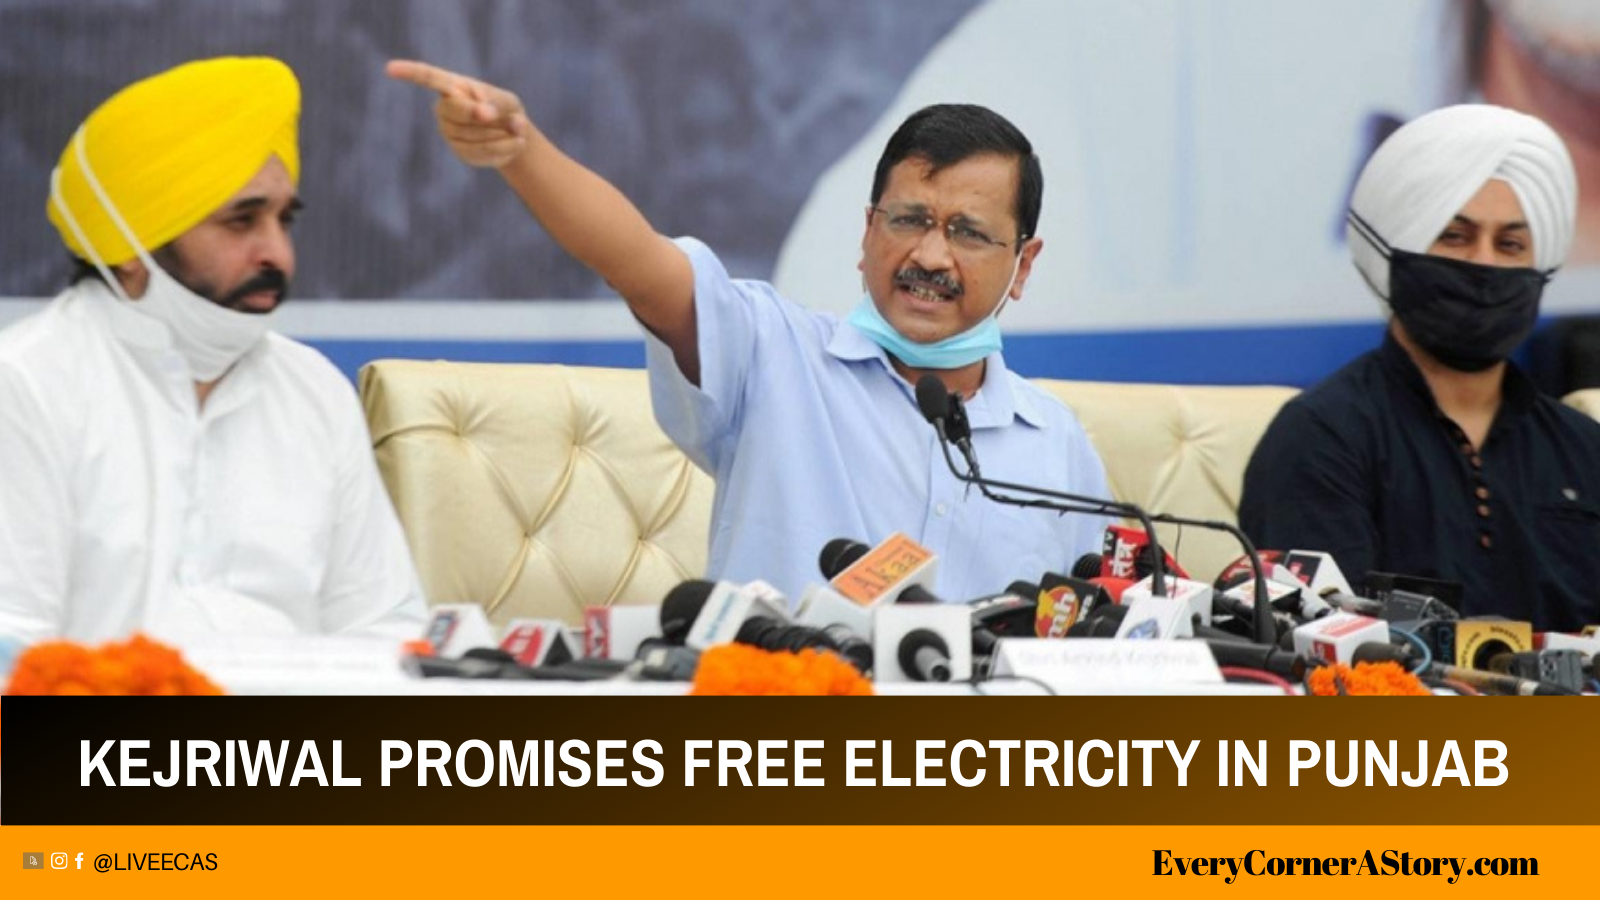 Kejriwal promises free electricity to every household in Punjab every corner a story ecas india